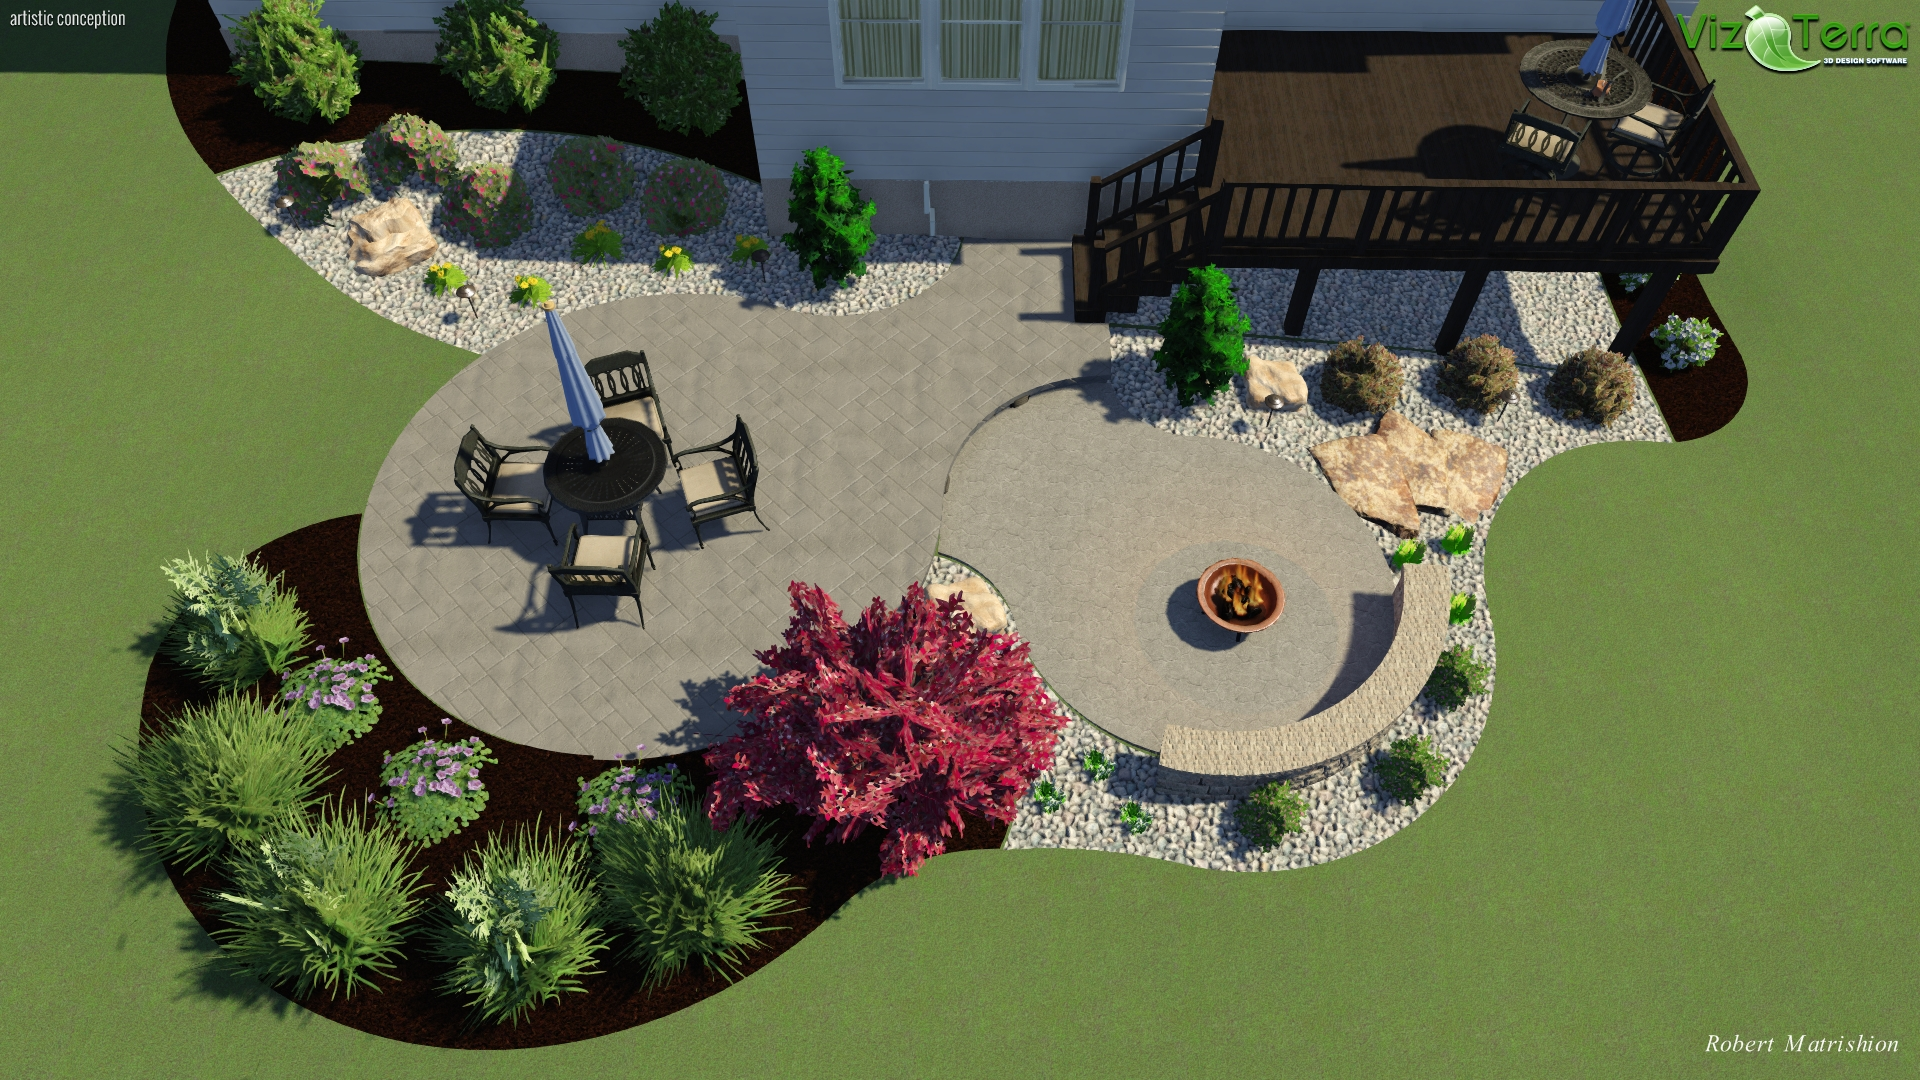 Landscape Design Of A Two Tier Decorative Stamped Concrete Patio With Landscaping